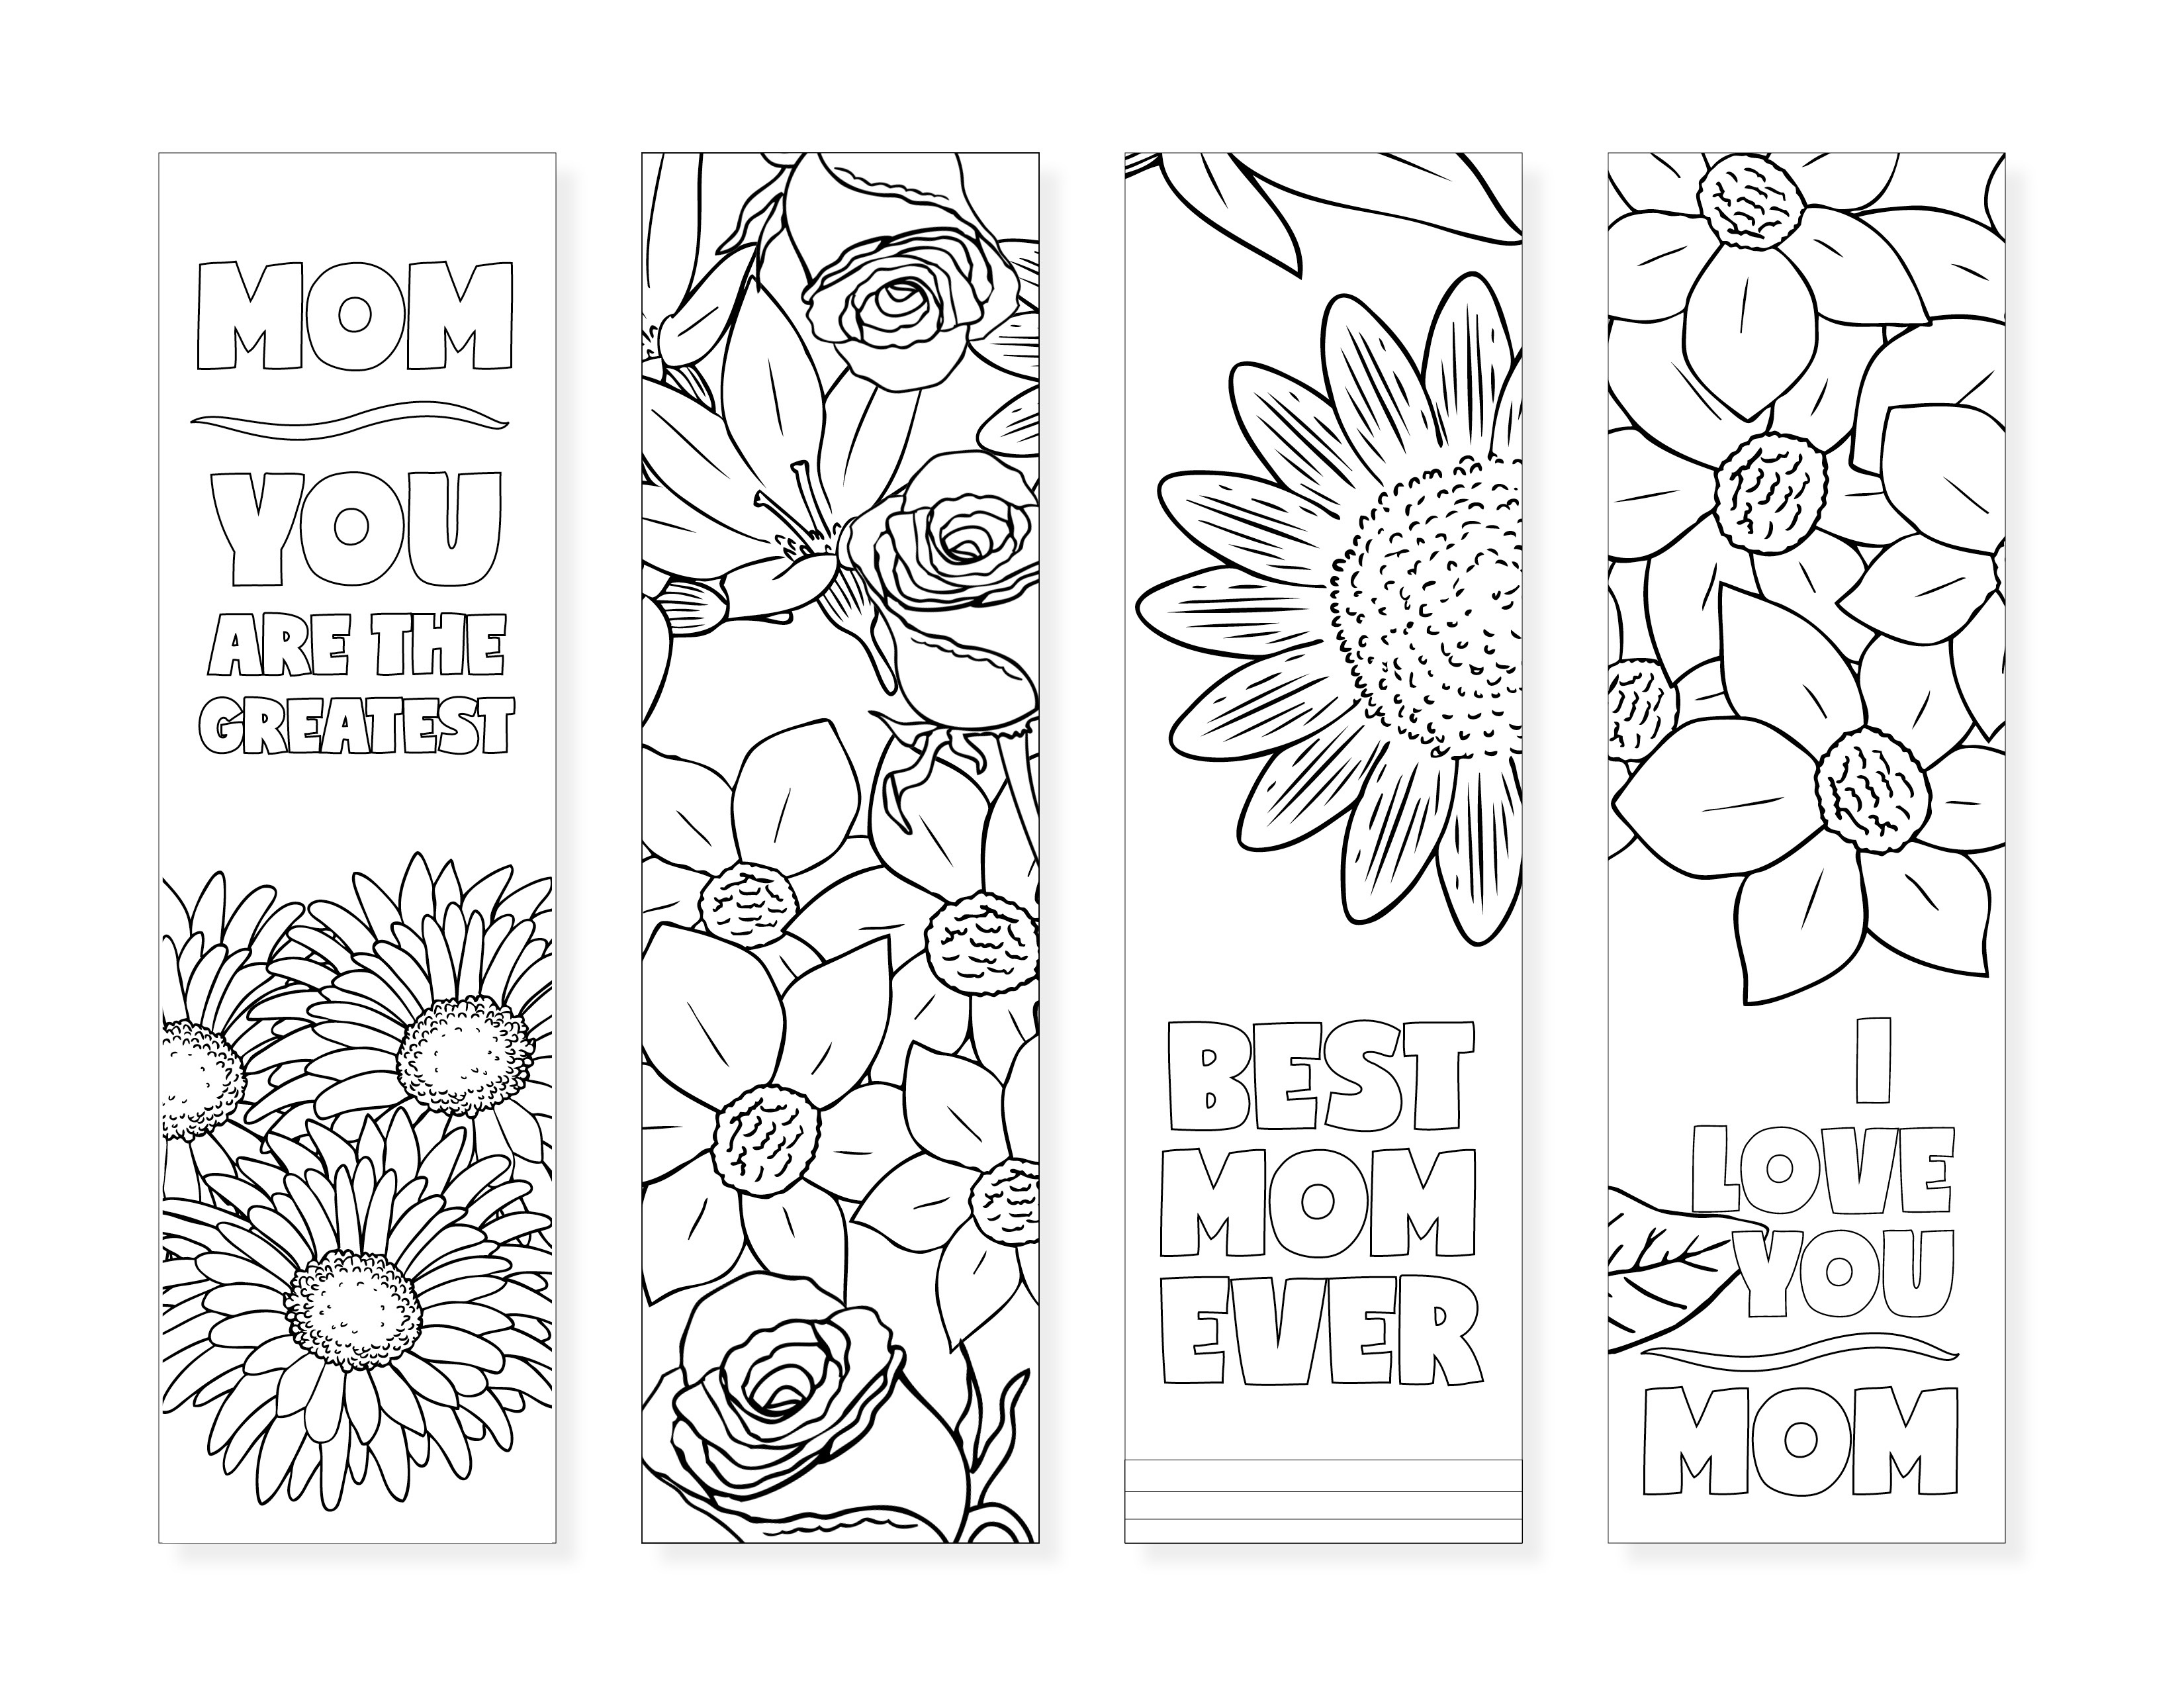 Free Printable Bookmarks For Moms - Design Dazzle - Free Printable Bookmarks